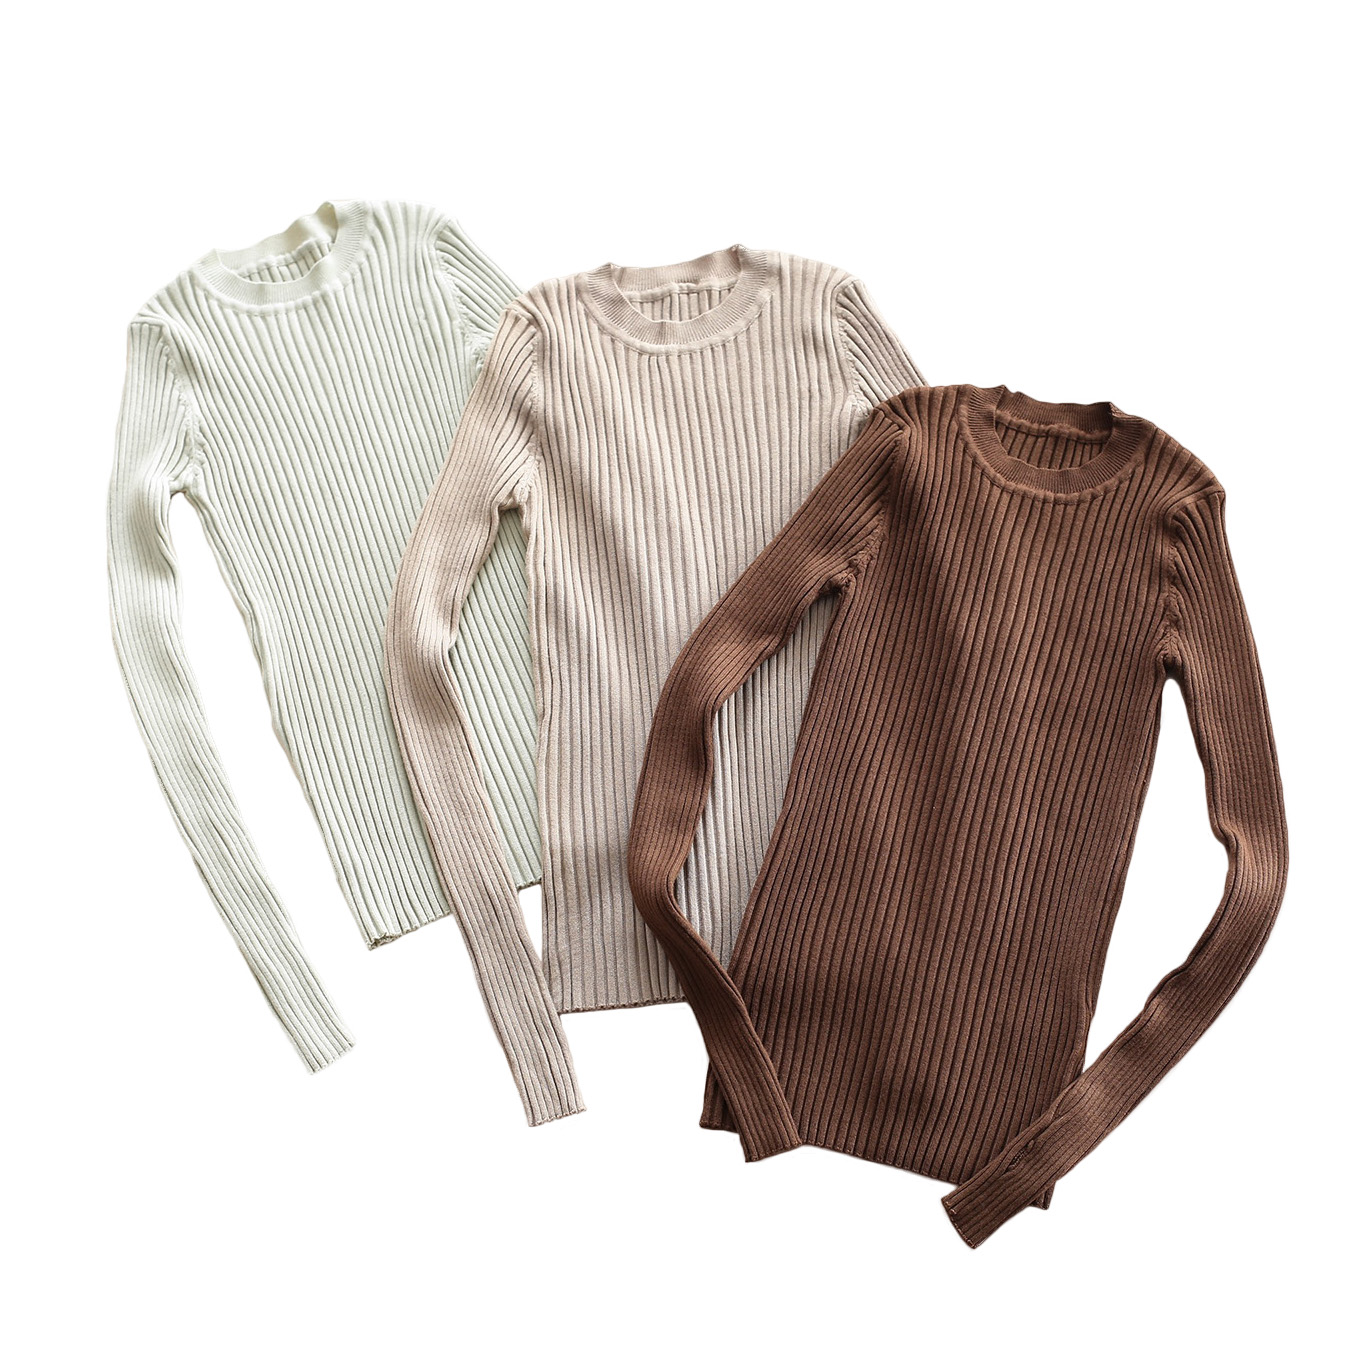 Crew Neck Ribbed Sweater Women Basic Slim Fit Rib Strikket topp Genser Solid langermet bomullsgensere med tommelhull